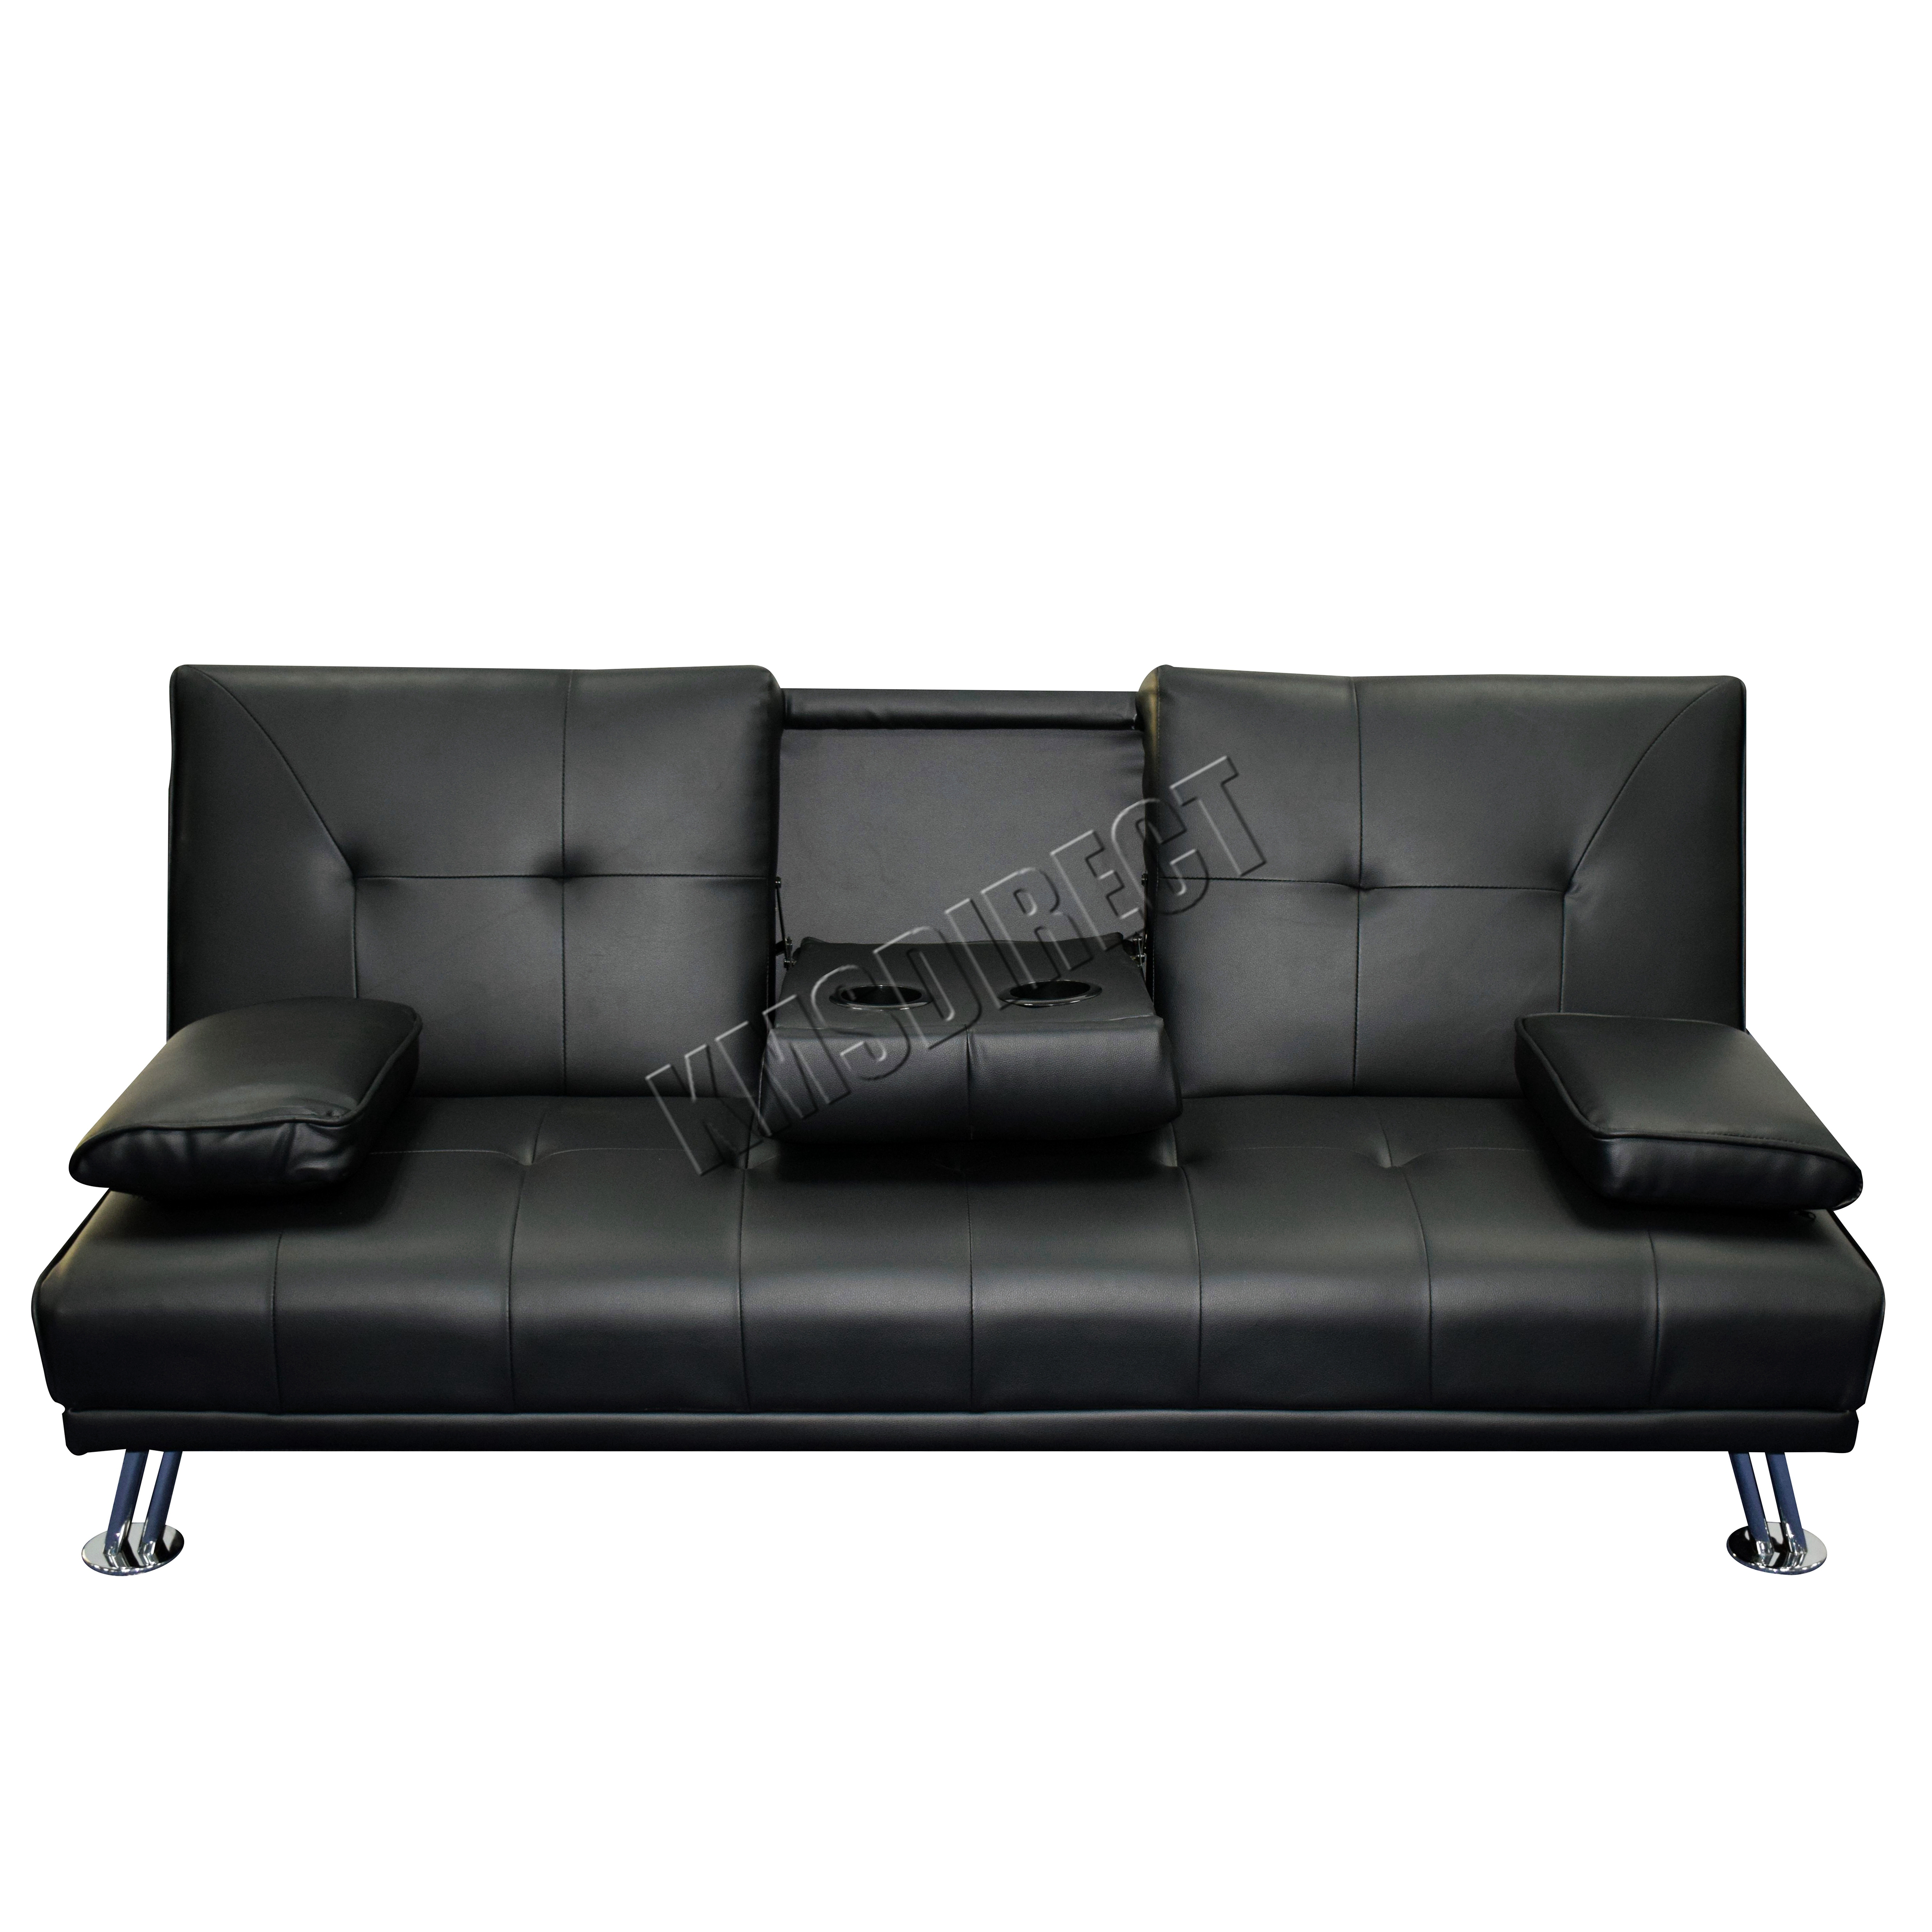 next day sofas customer reviews faux leather sectional westwood manhattan sofa bed recliner 3 seater